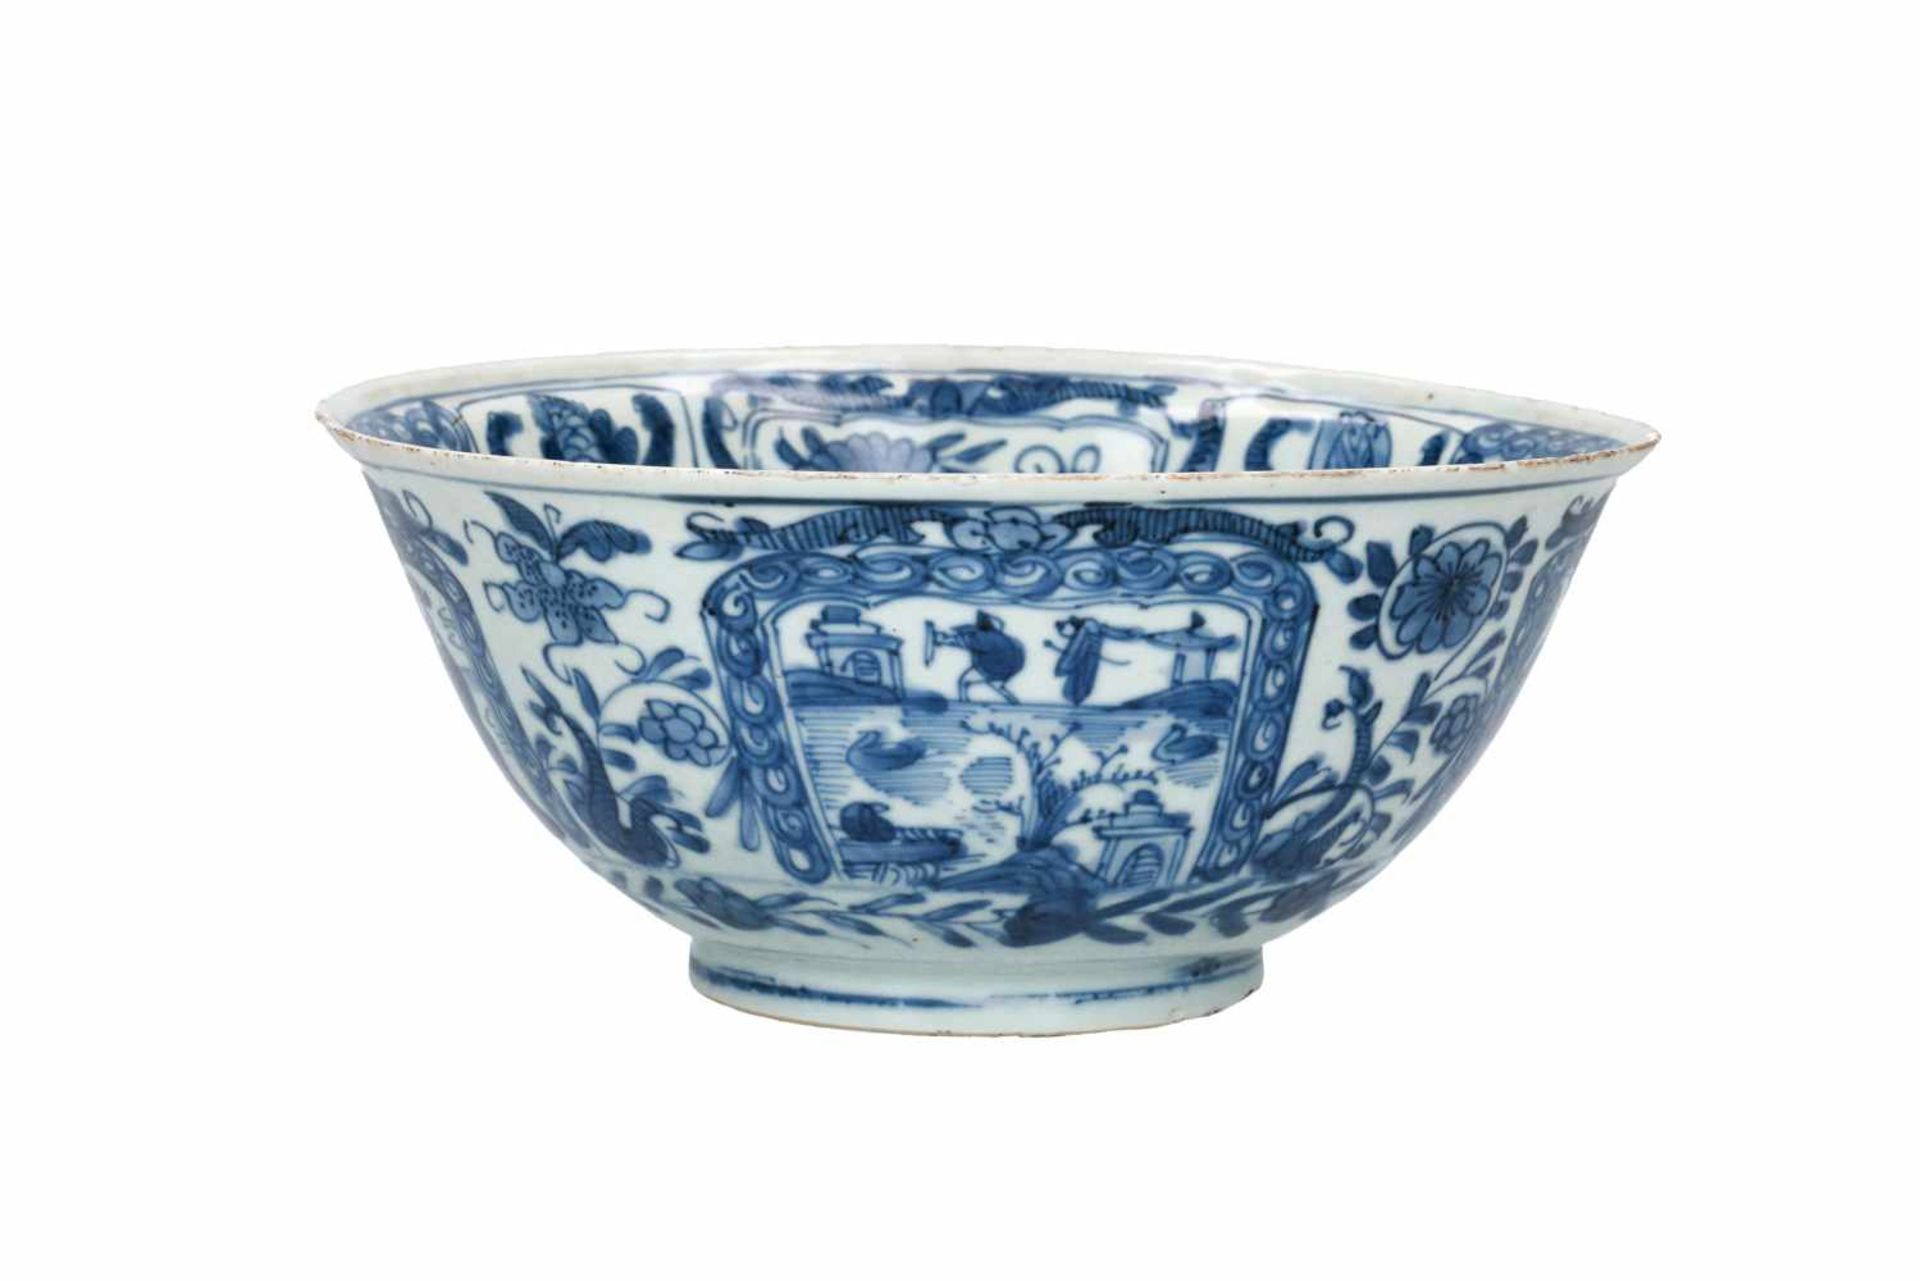 A blue and white porcelain bowl, decorated with figures, tulips and landscapes. Unmarked. China, - Bild 3 aus 6